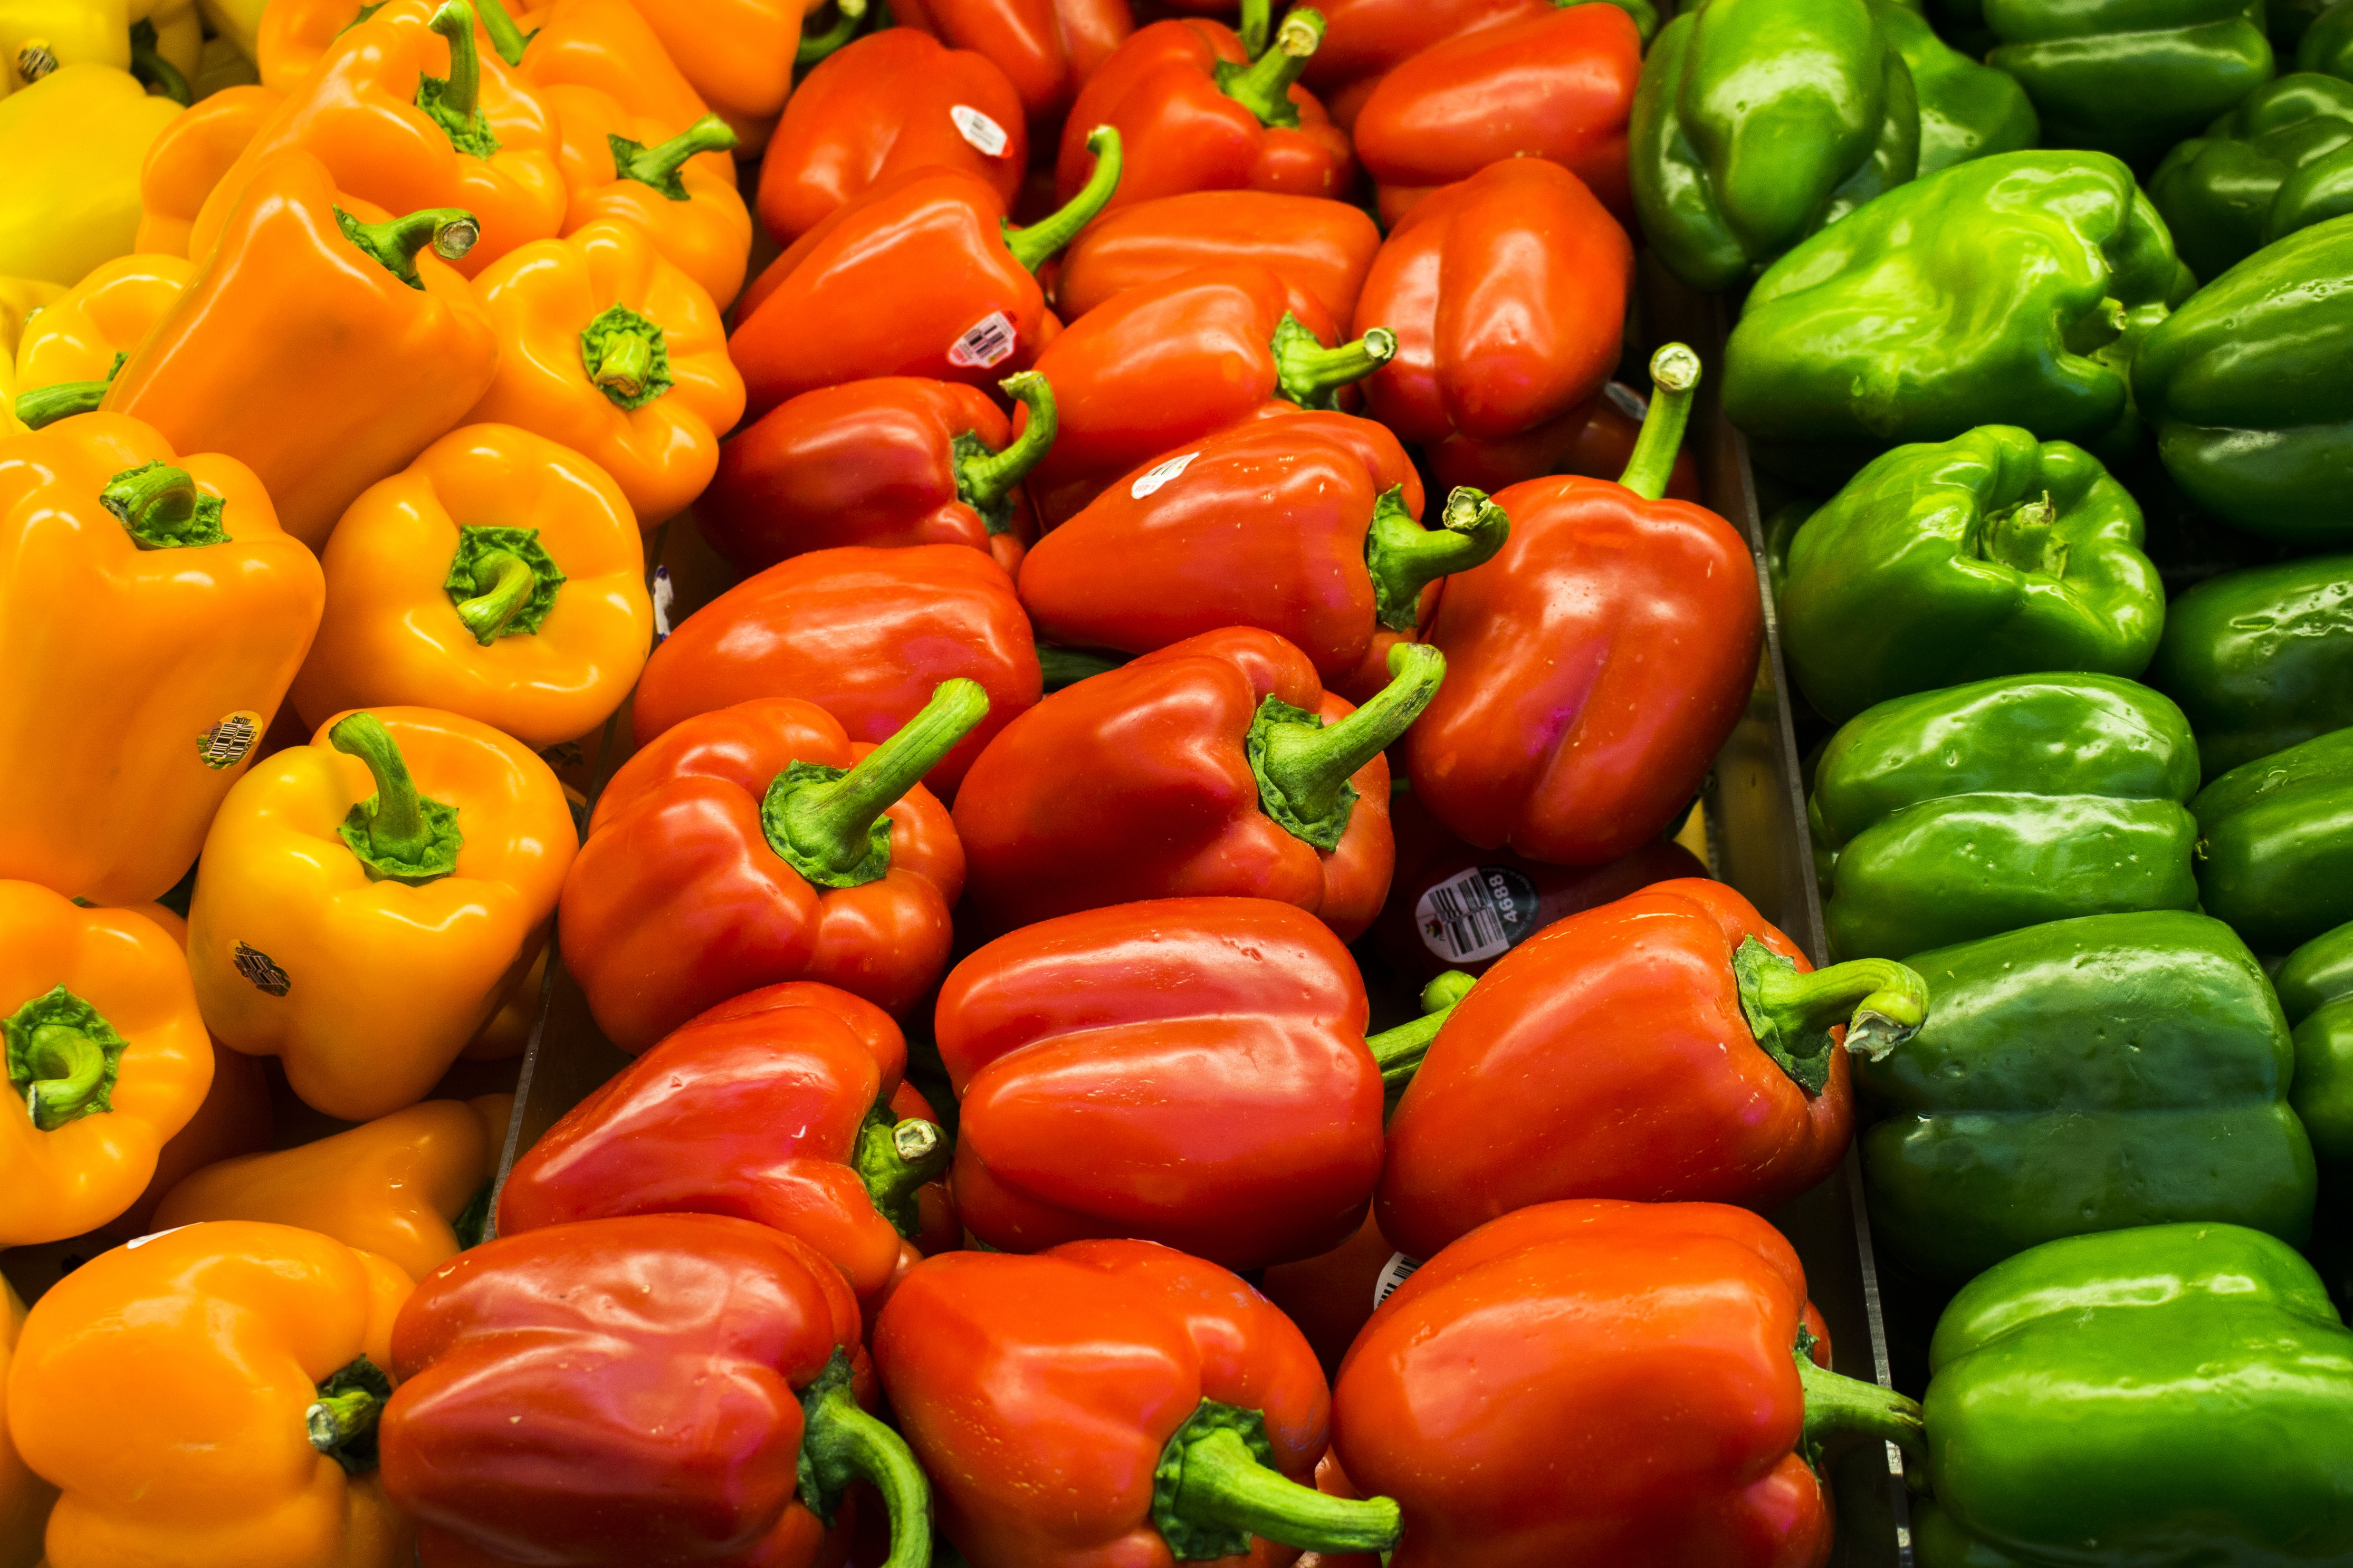 market-peppers_4460x4460